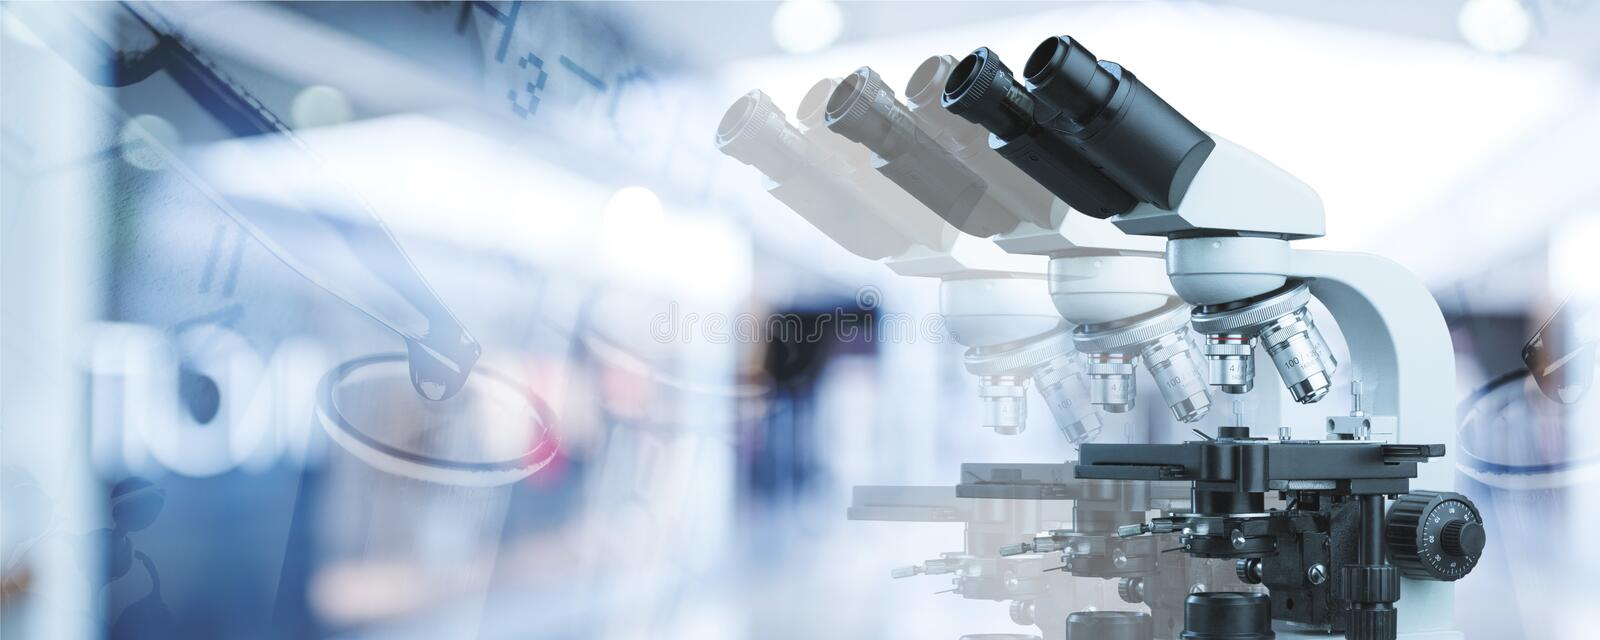 Background. Pharmaceutical research scientific banner abstract biotech royalty free stock image